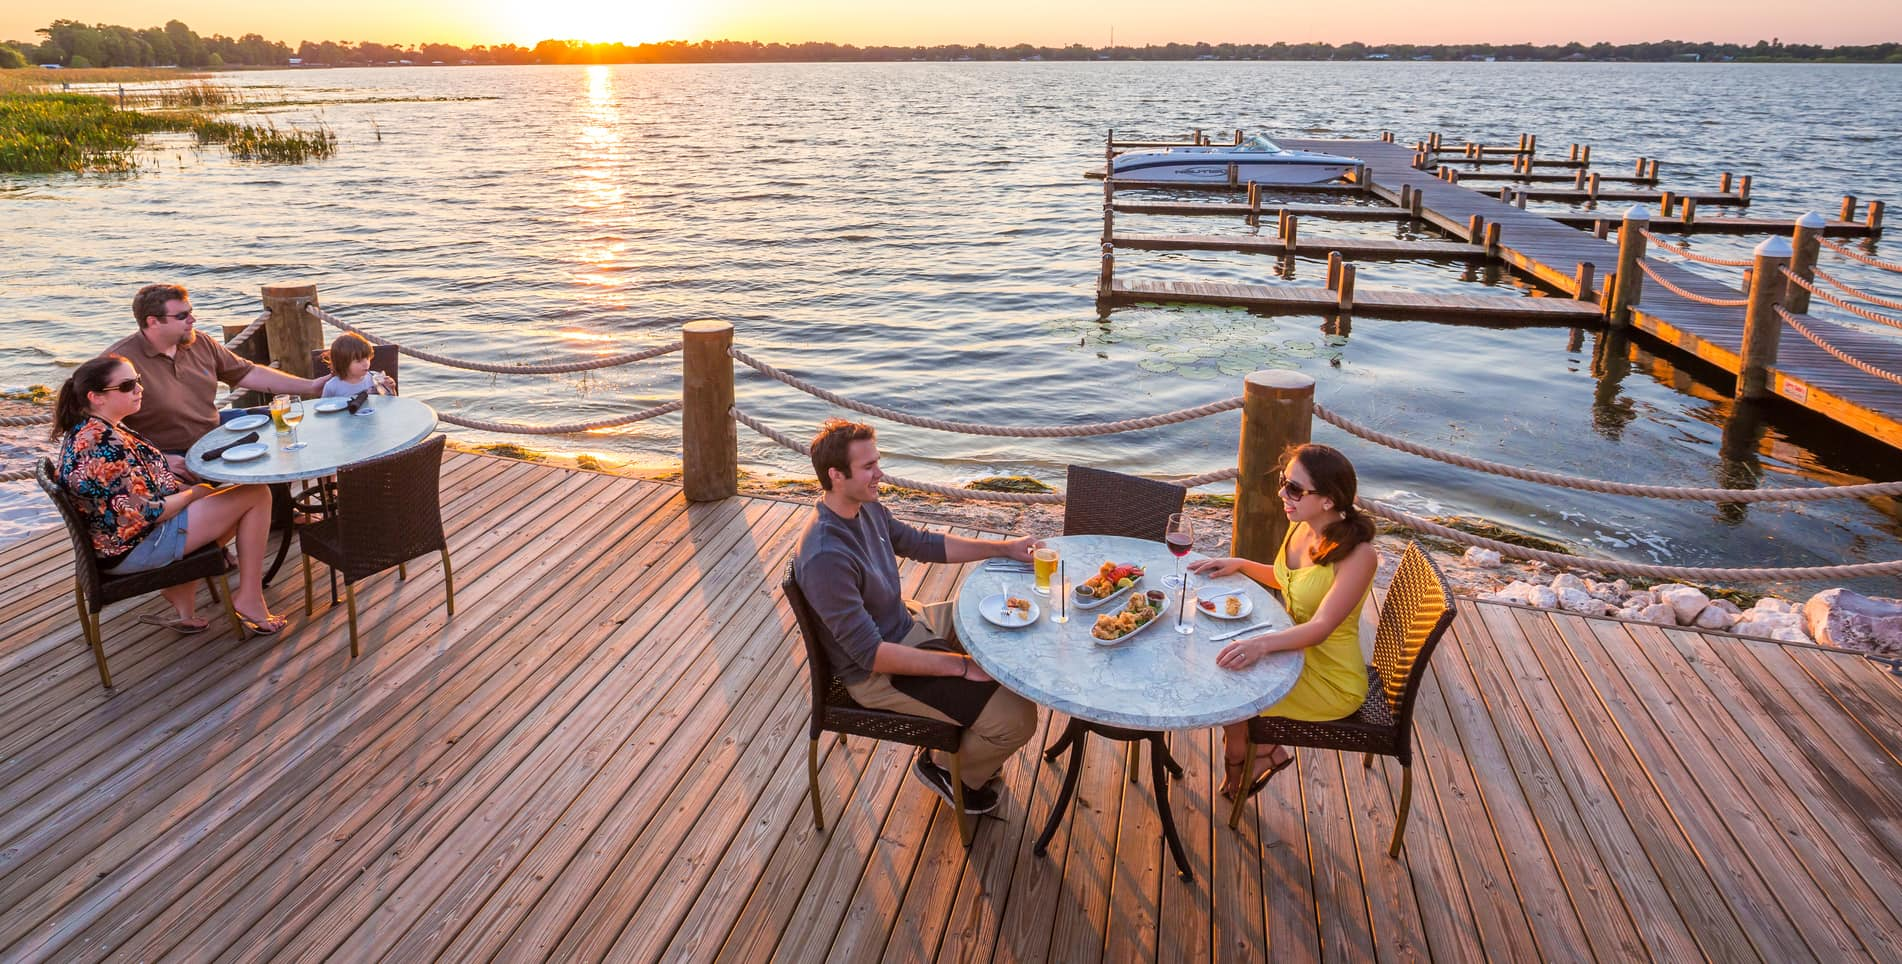 Outdoor dining at Harborside restaurant